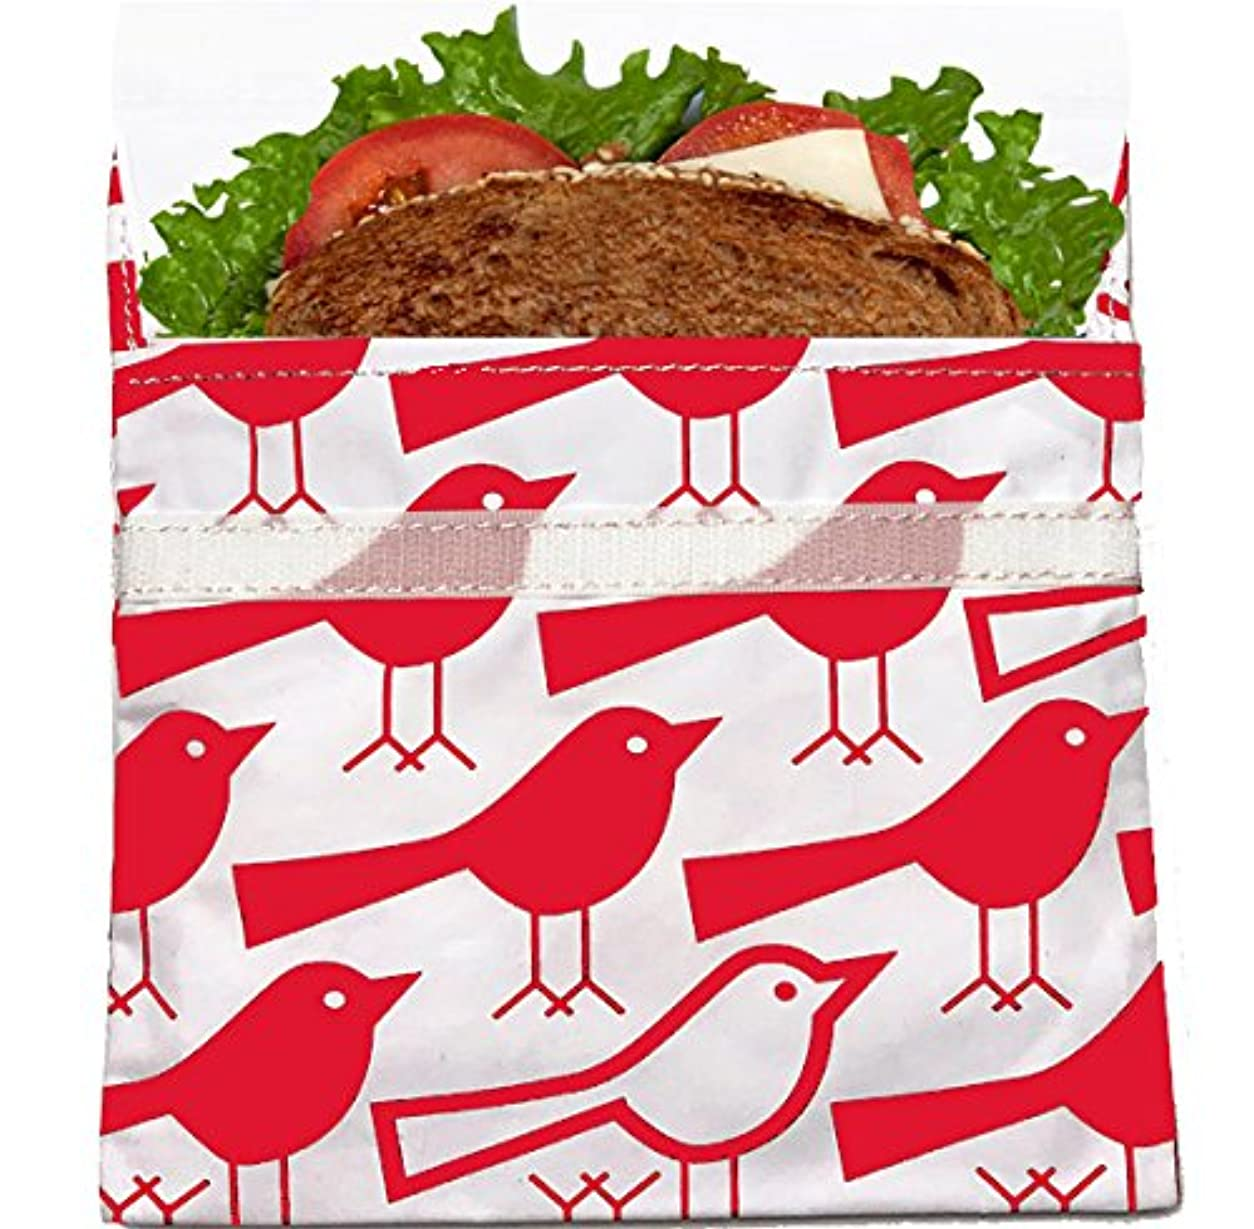 ホスト原子ズボンLunchskins Reusable Sandwich Bag, Red Bird by LunchSkins